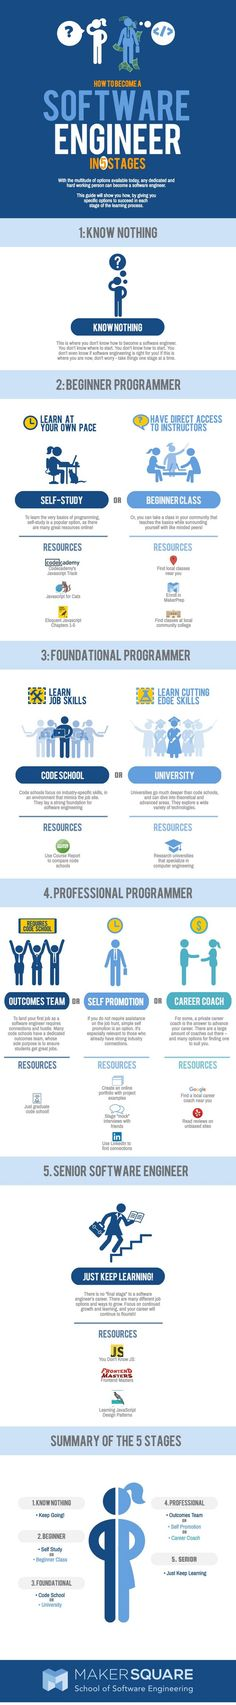 How to Become a Software Engineer - Imgur